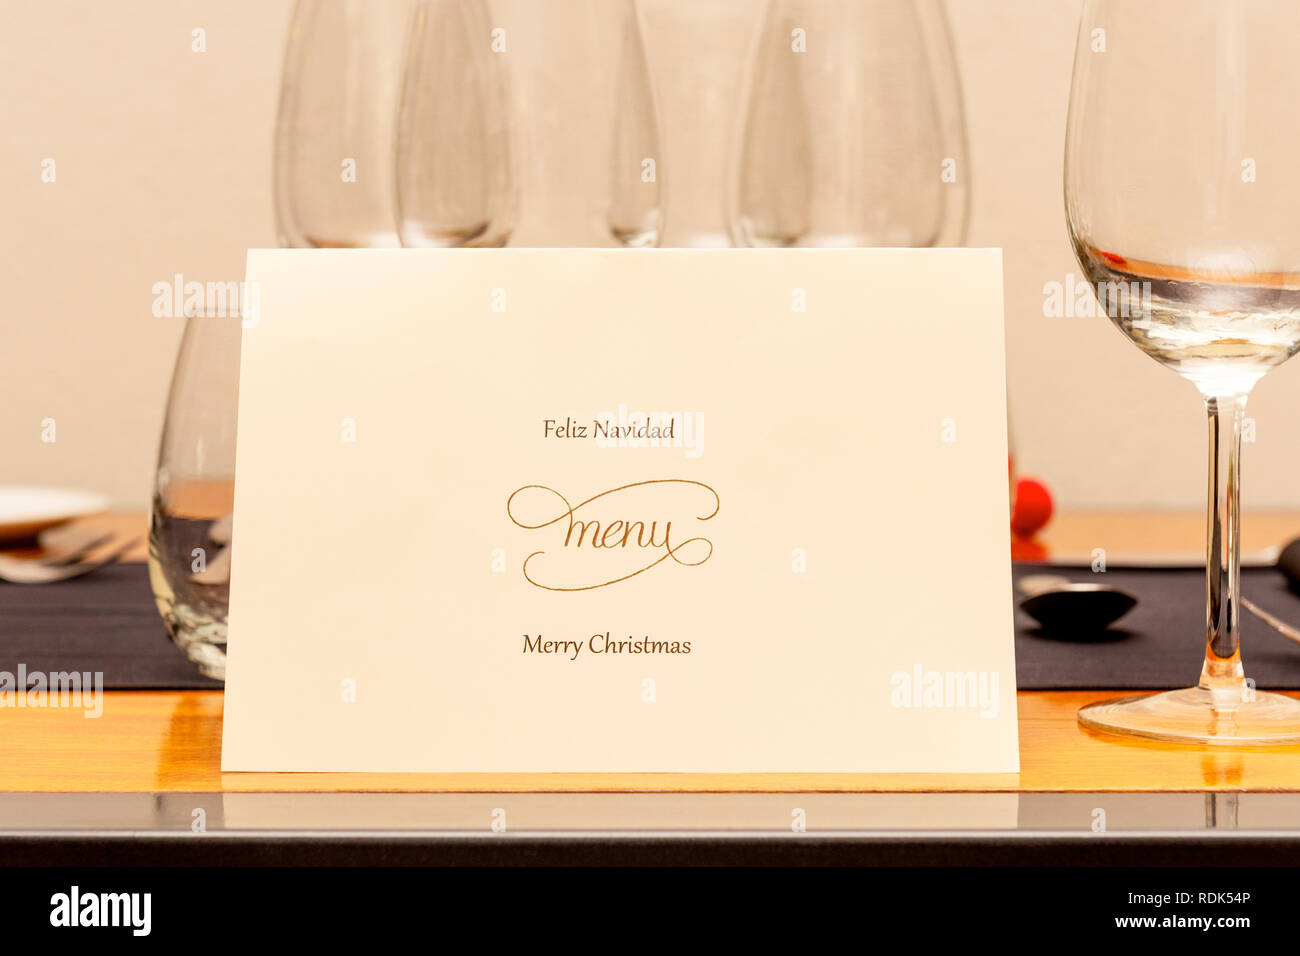 Christmas Menu laid on the table before dinner. - Stock Image